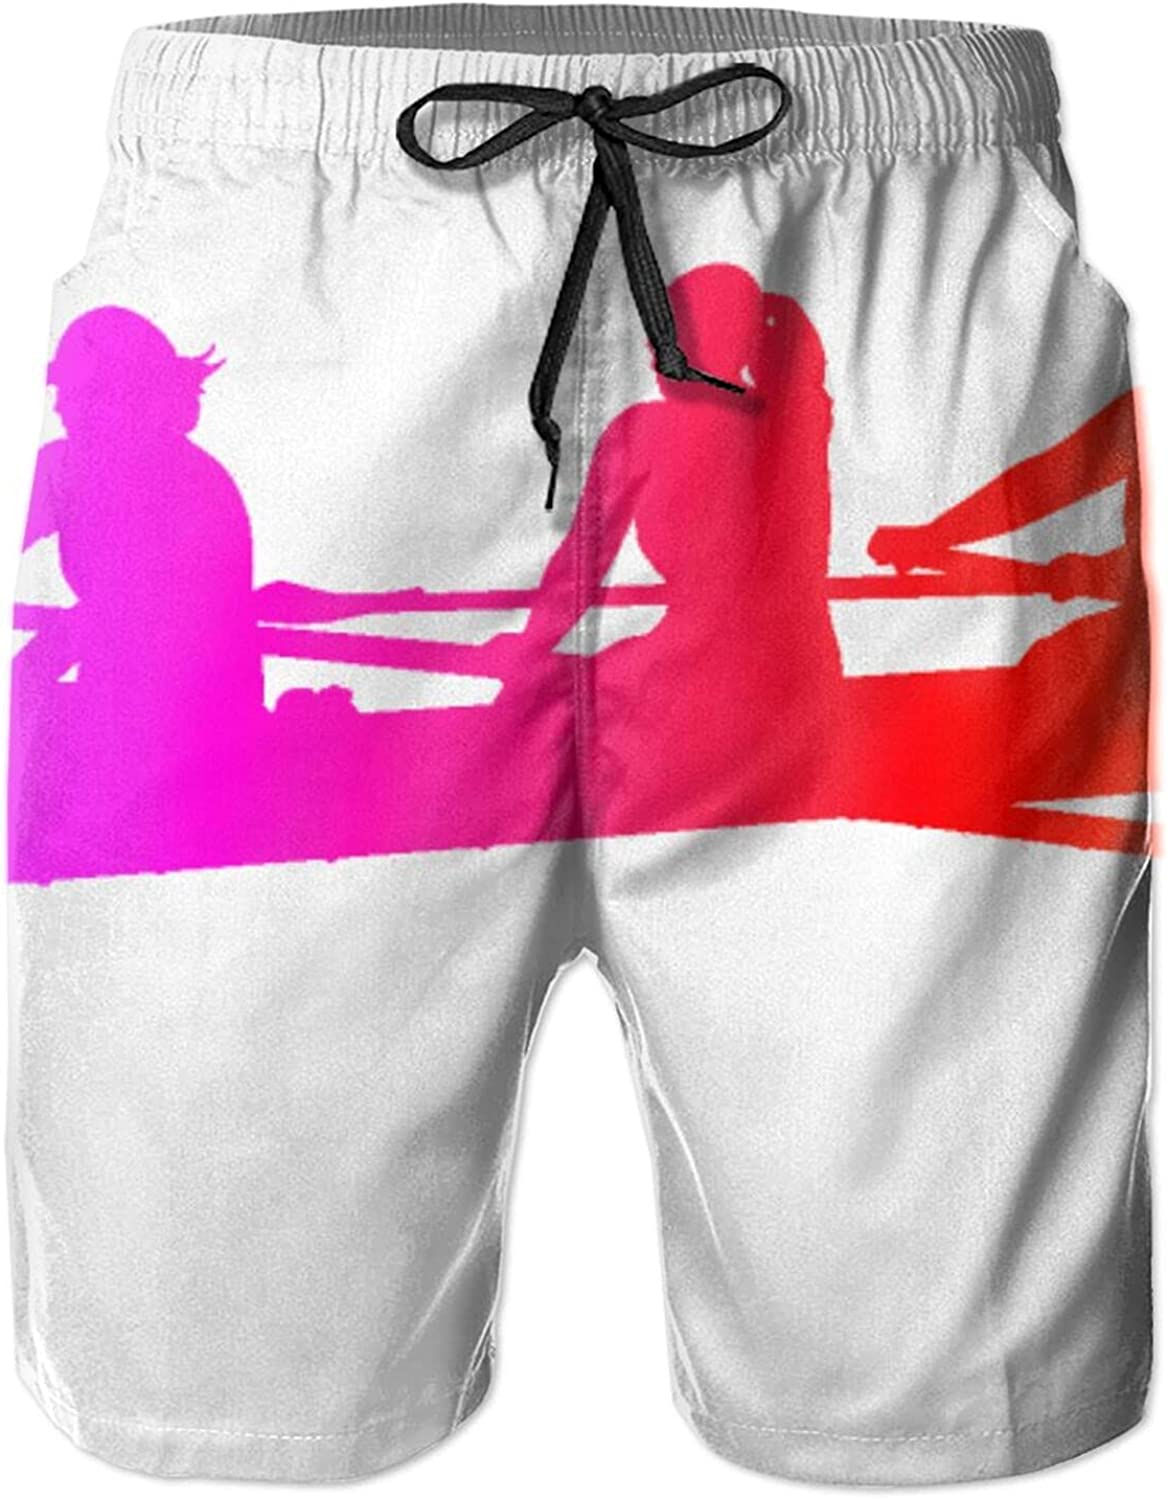 Mens Colorful Rowing Boat Dragon Swim In stock Short Over item handling Dry Trunk Quick